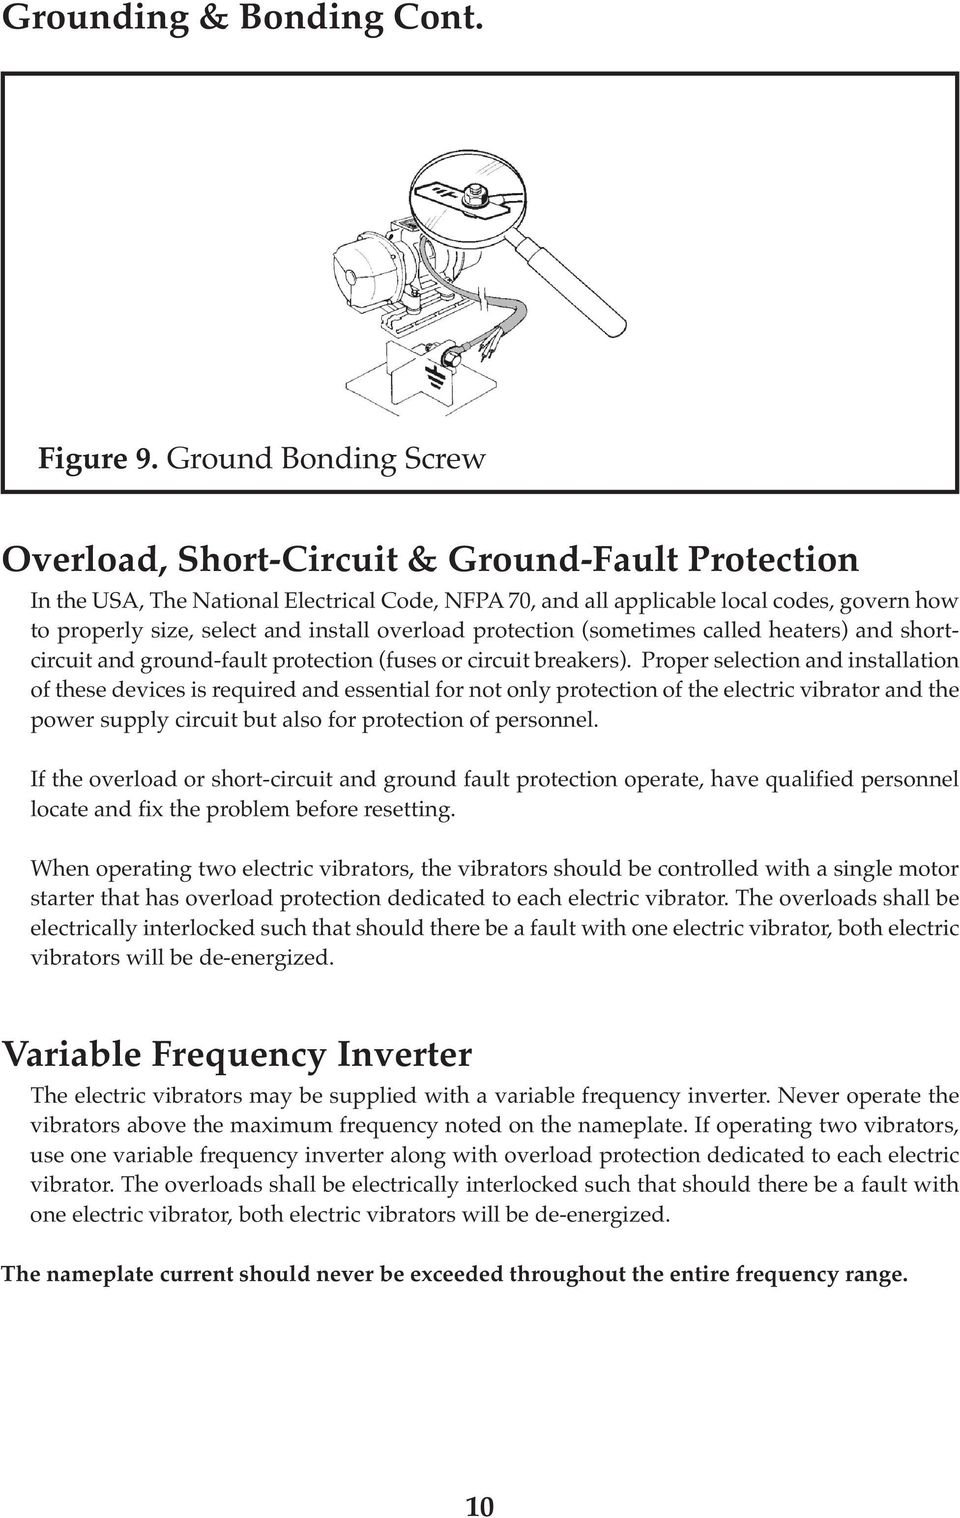 Italvibras Usa Operator S Manual Pdf Protection From The Shortcircuit And Groundfault Device Install Overload Sometimes Called Heaters Ground Fault